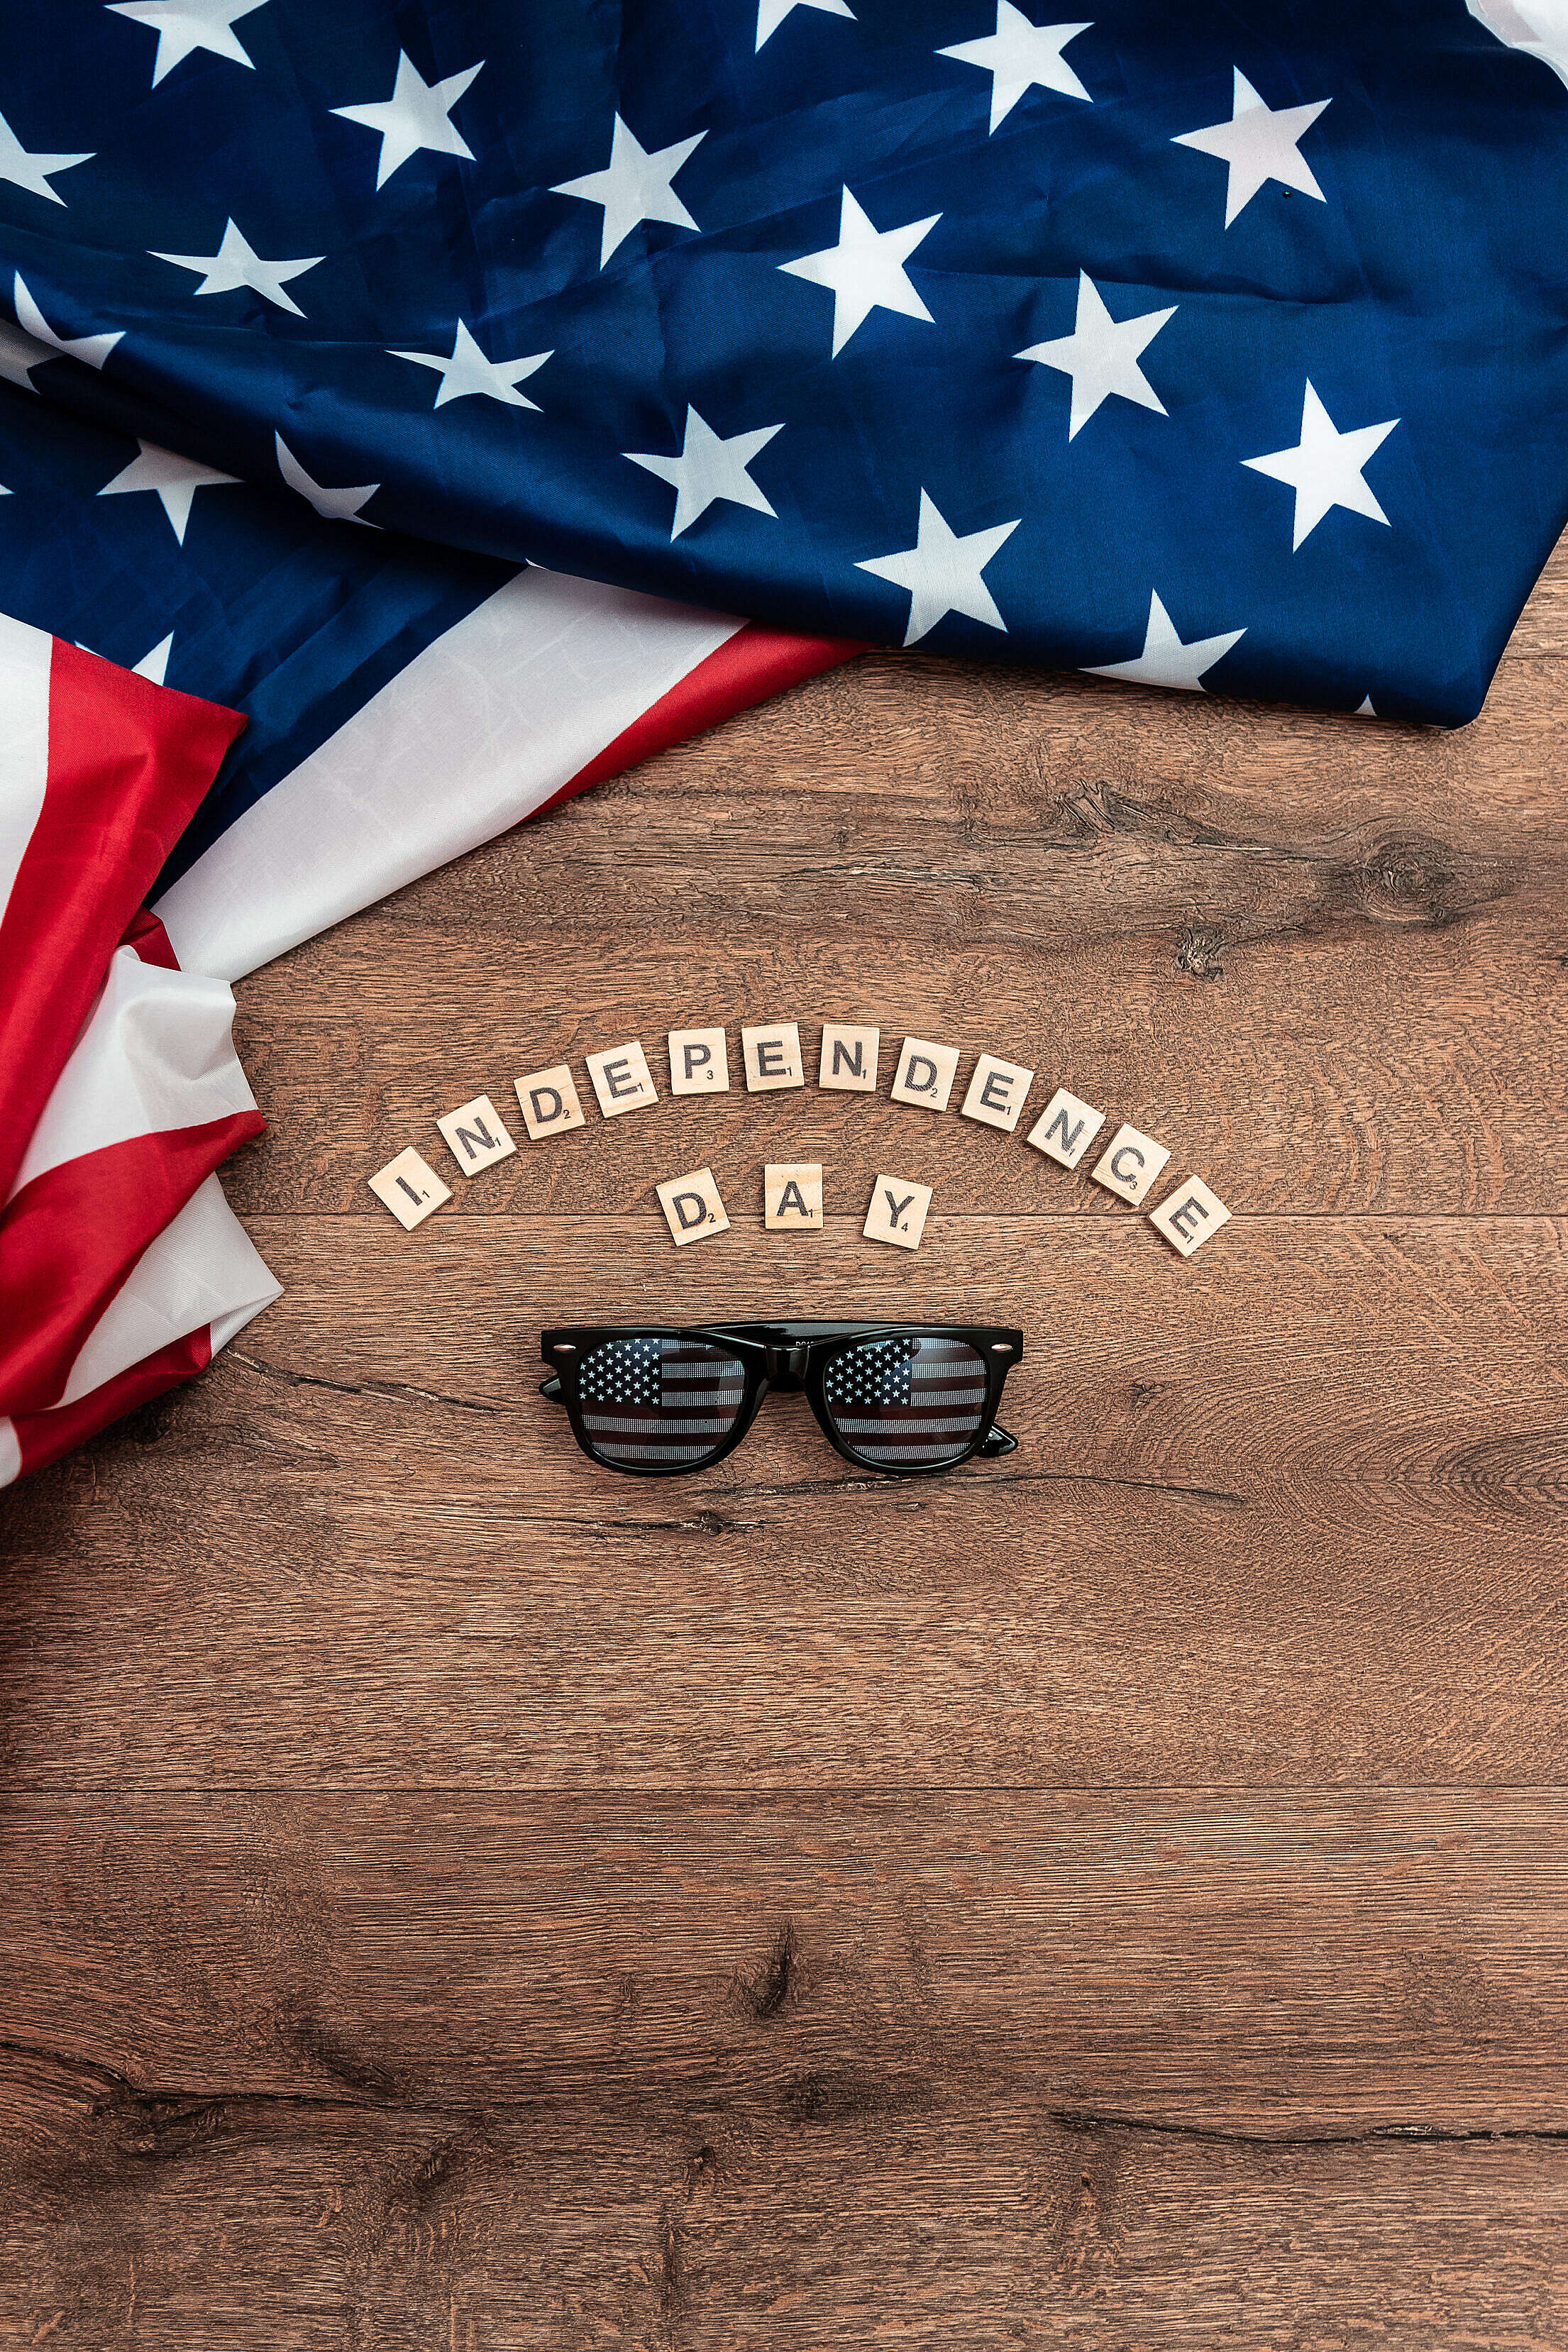 Independence Day July 4th USA Sunglasses Free Stock Photo